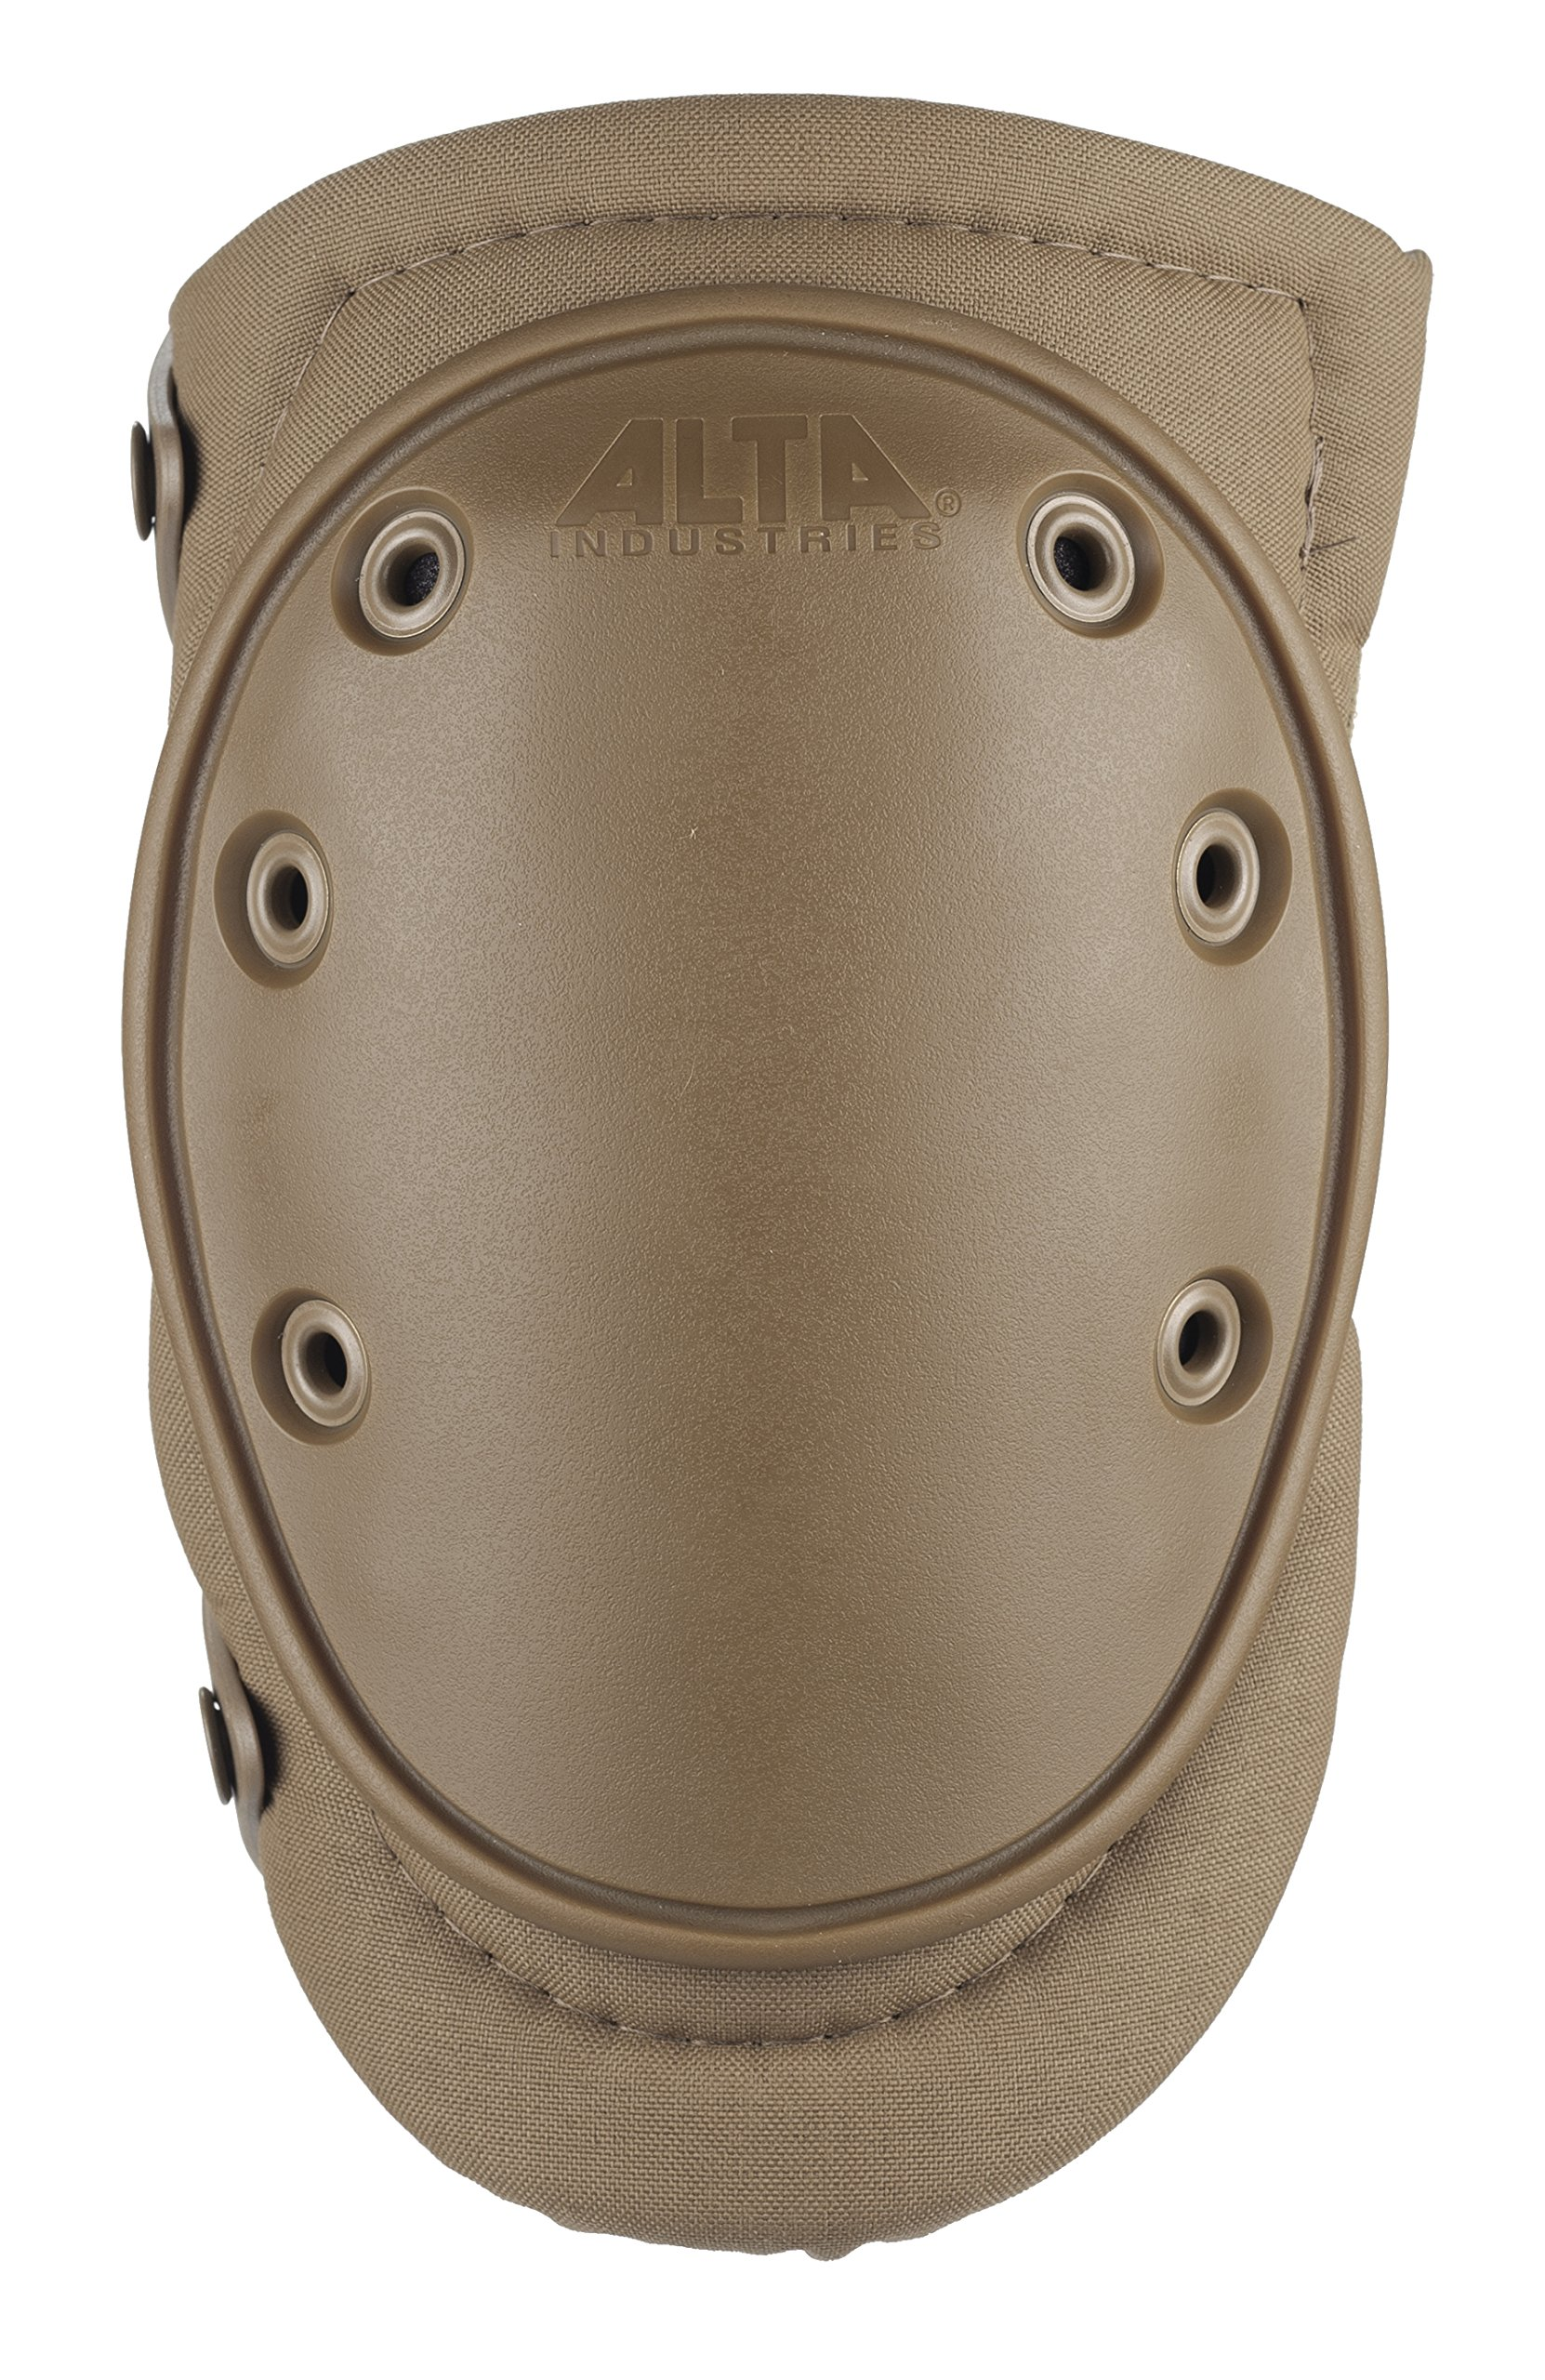 Alta Industries 50413 AT50413-14 AltaFLEX Knee Pads, Coyote (One Pair) by Alta Industries